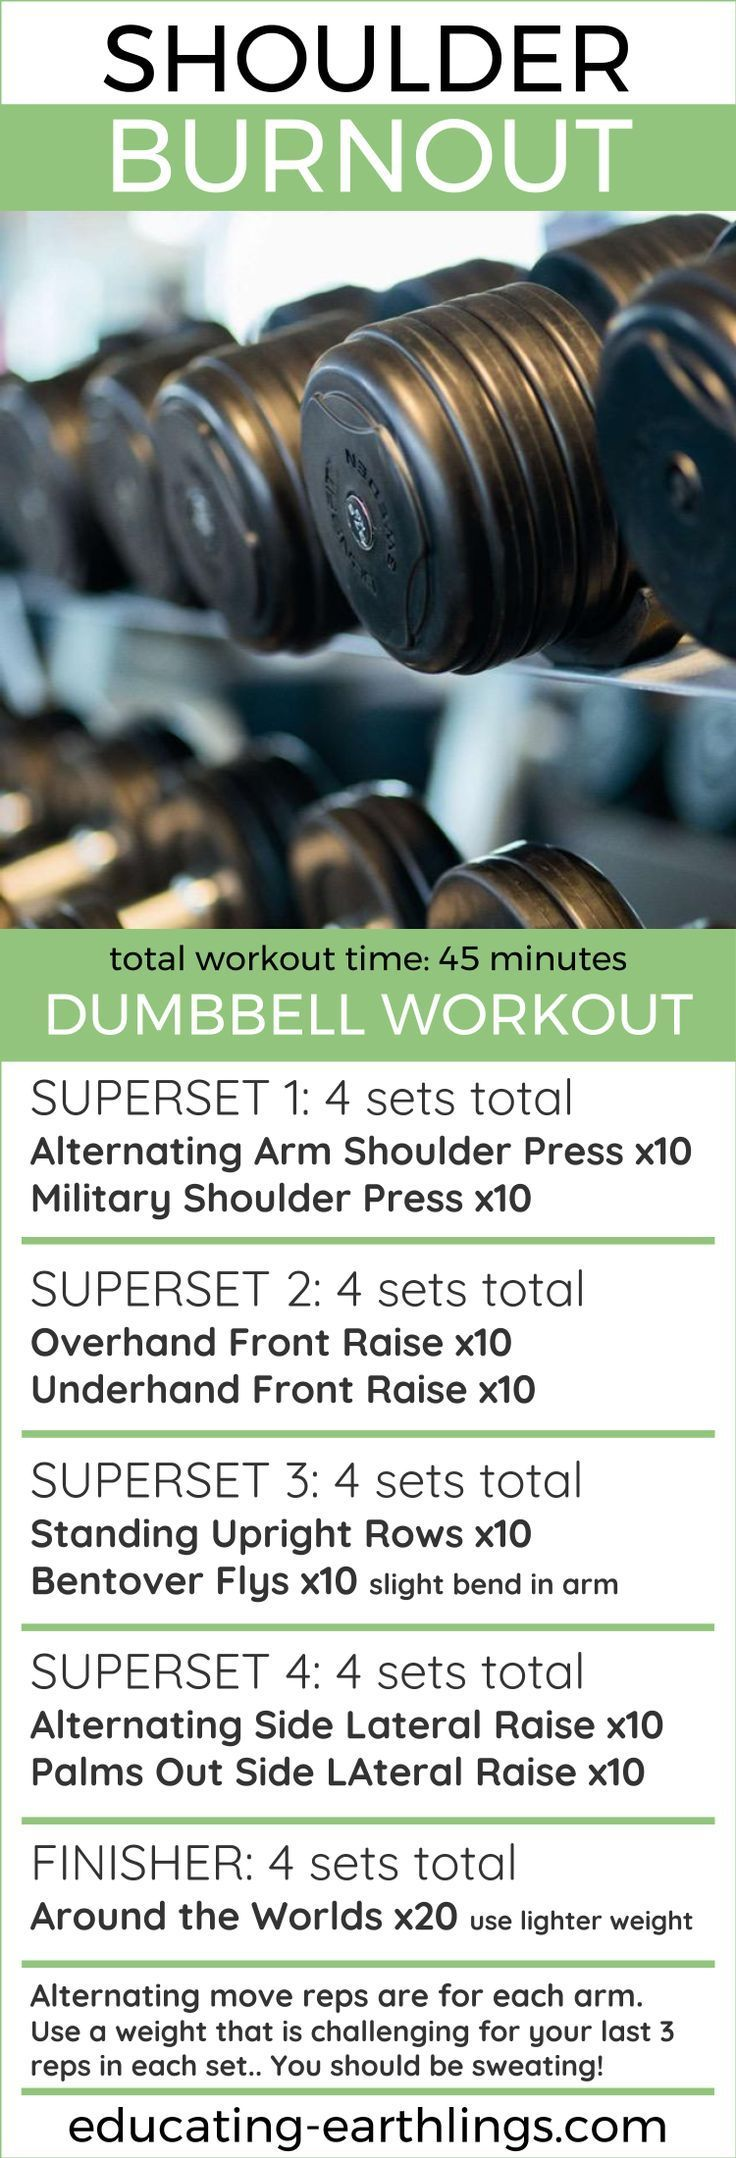 Shoulder Burnout - Dumbbell Workout, women's fitness, at home workout, strength training, weight lifting for women, weight training, weightlifting workout, vegan fitness, online personal training, free workouts